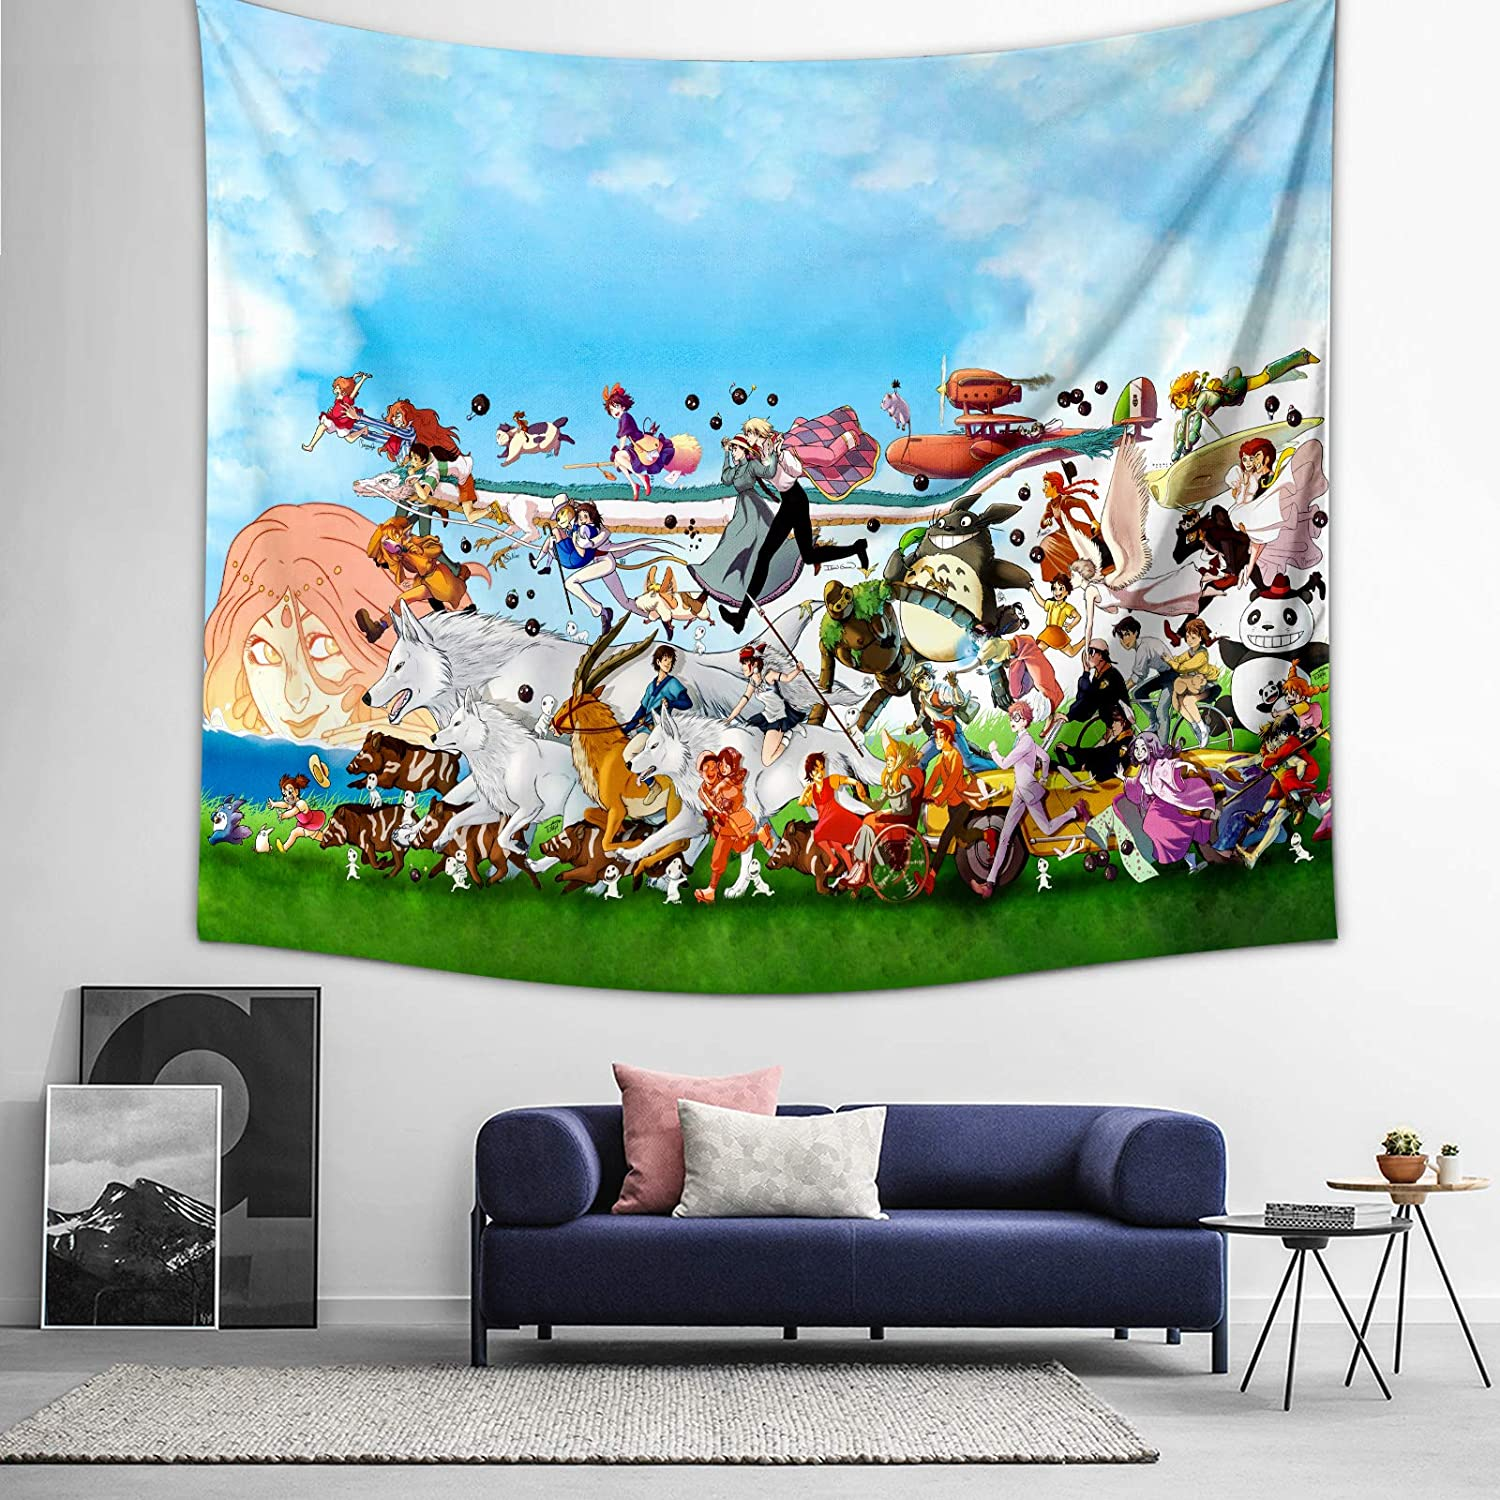 Tapestry Wall Hanging Hayao-Miyazaki Tapestry My Neighbor Toto-ro Spirited-Away Anime Tapestry for Home Living Room Bedroom Dorm Decoration60 x 40 Inches